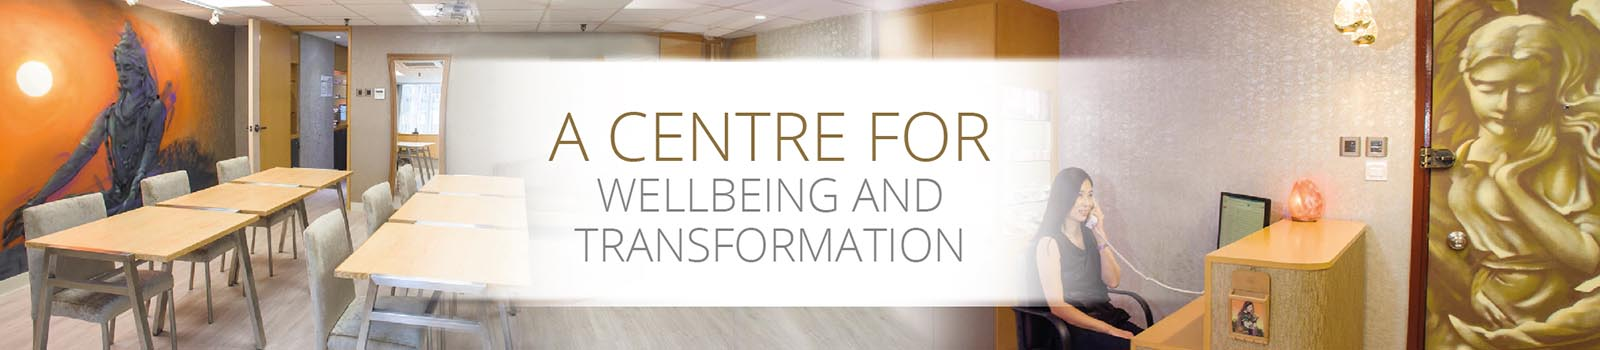 A Centre for Wellbeing and Transformation